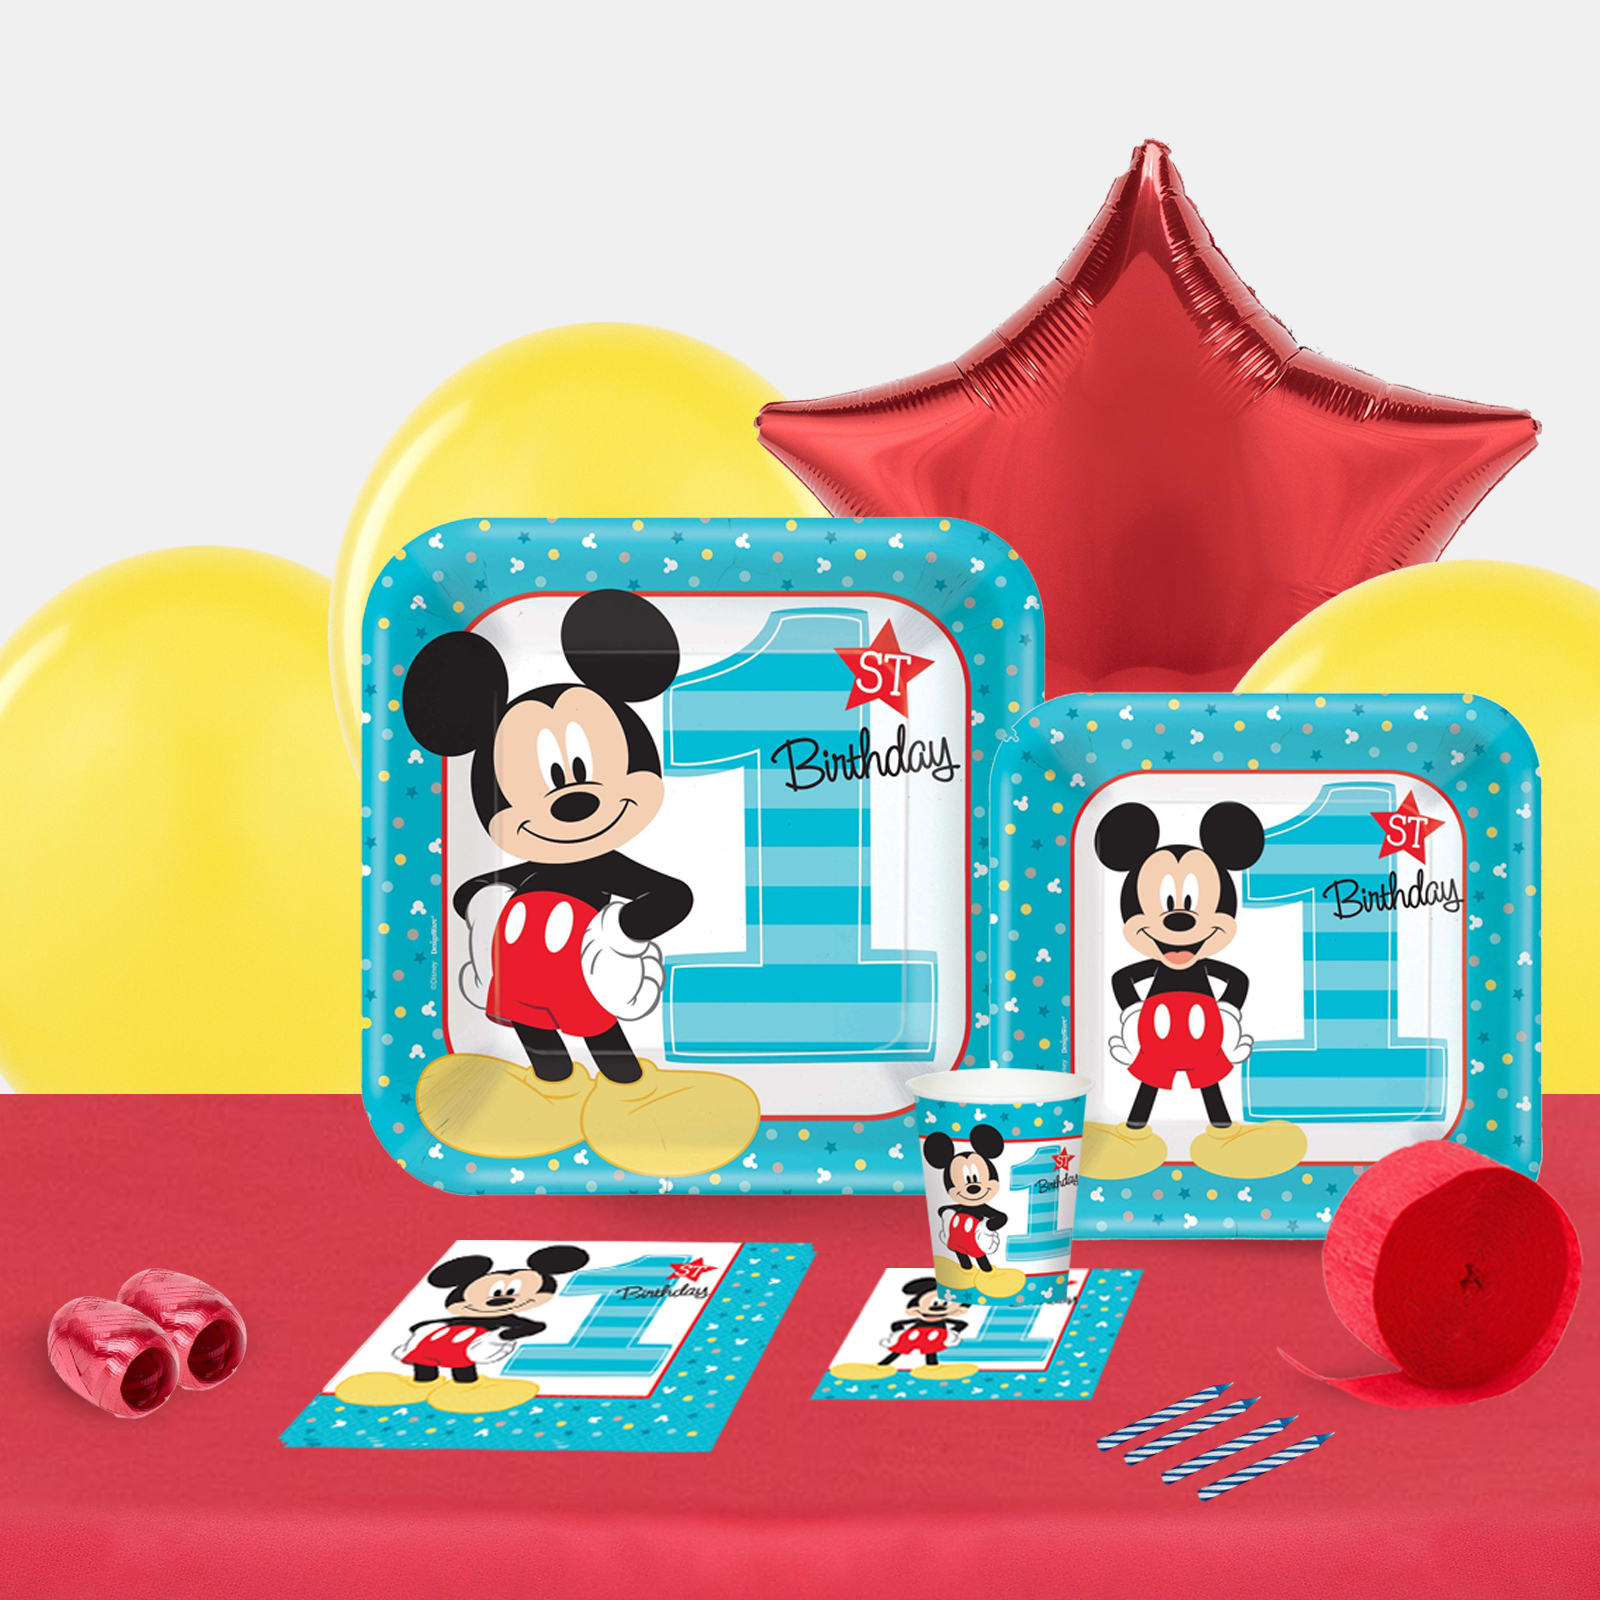 Disney Mickey Mouse 1st Birthday Party in a Box-Basic